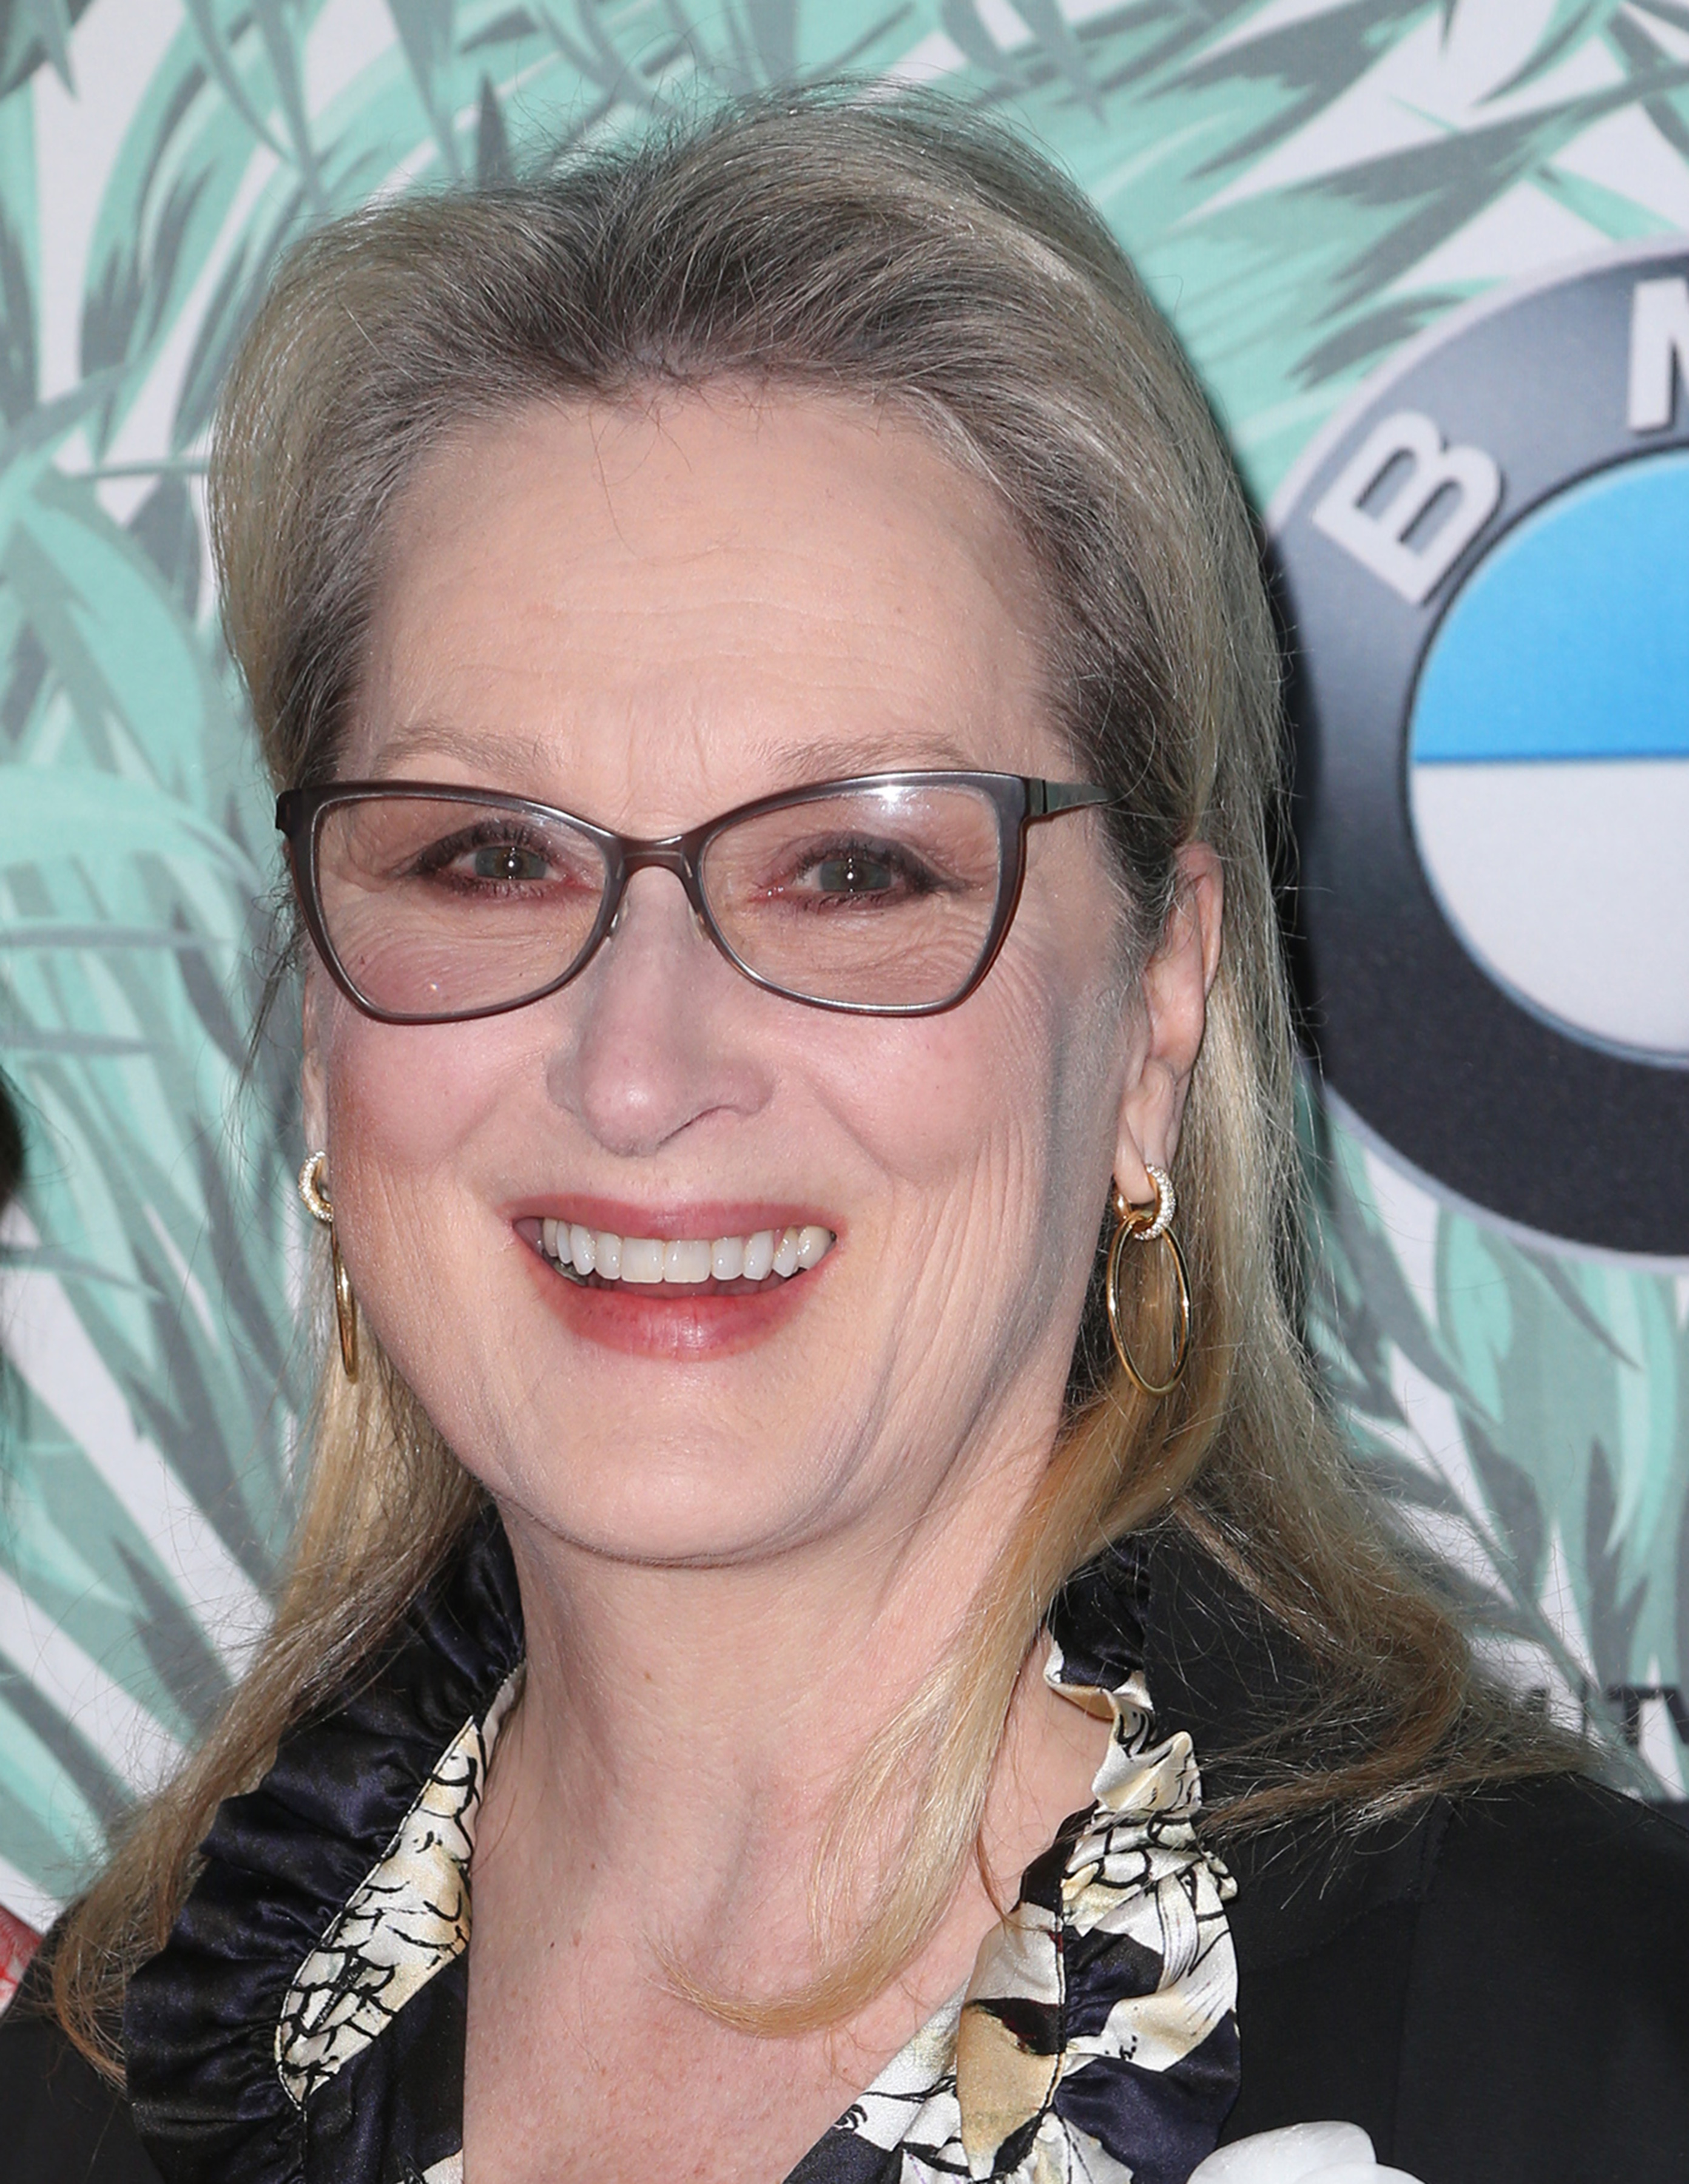 10th Annual Women In Film Pre-Oscar Cocktail Party Presented By Max Mara And BMW - Arrivals  Featuring: Meryl Streep Where: West Hollywood, California, United States When: 24 Feb 2017 Credit: FayesVision/WENN.com